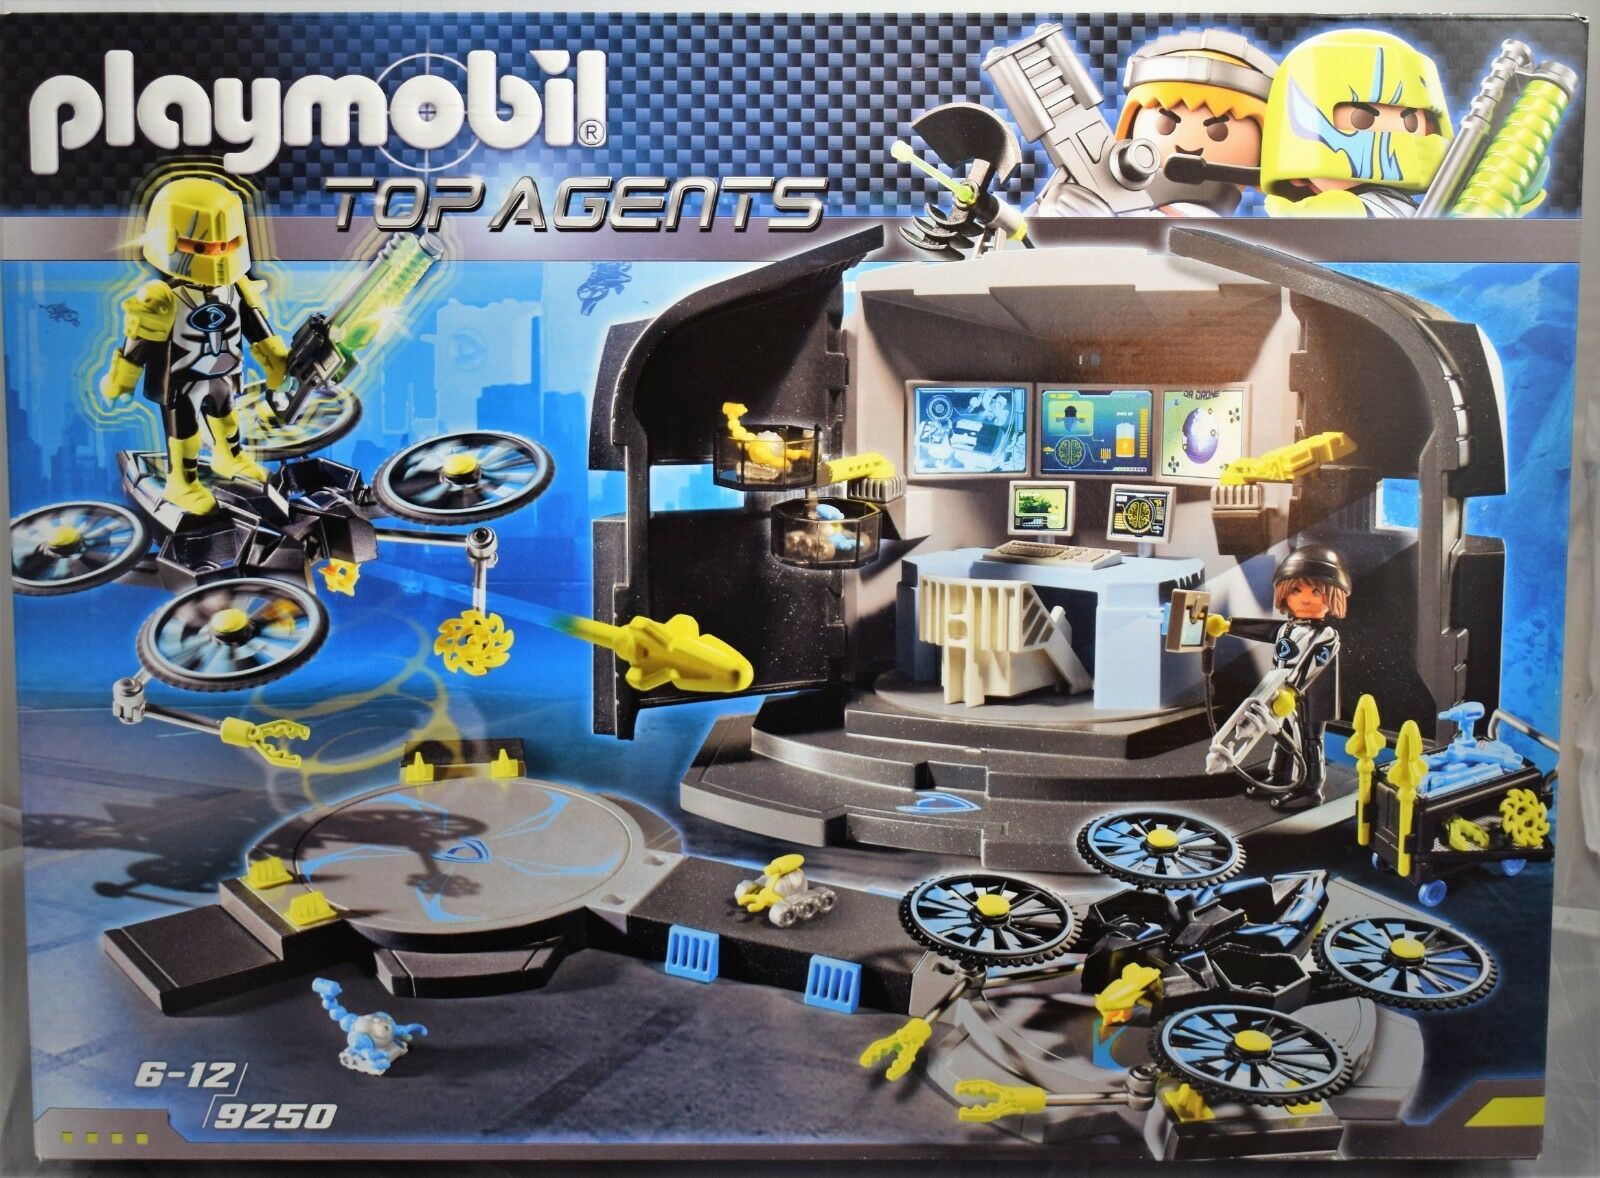 Playmobil Top Agents 9250 Dr. Drone's Command Center